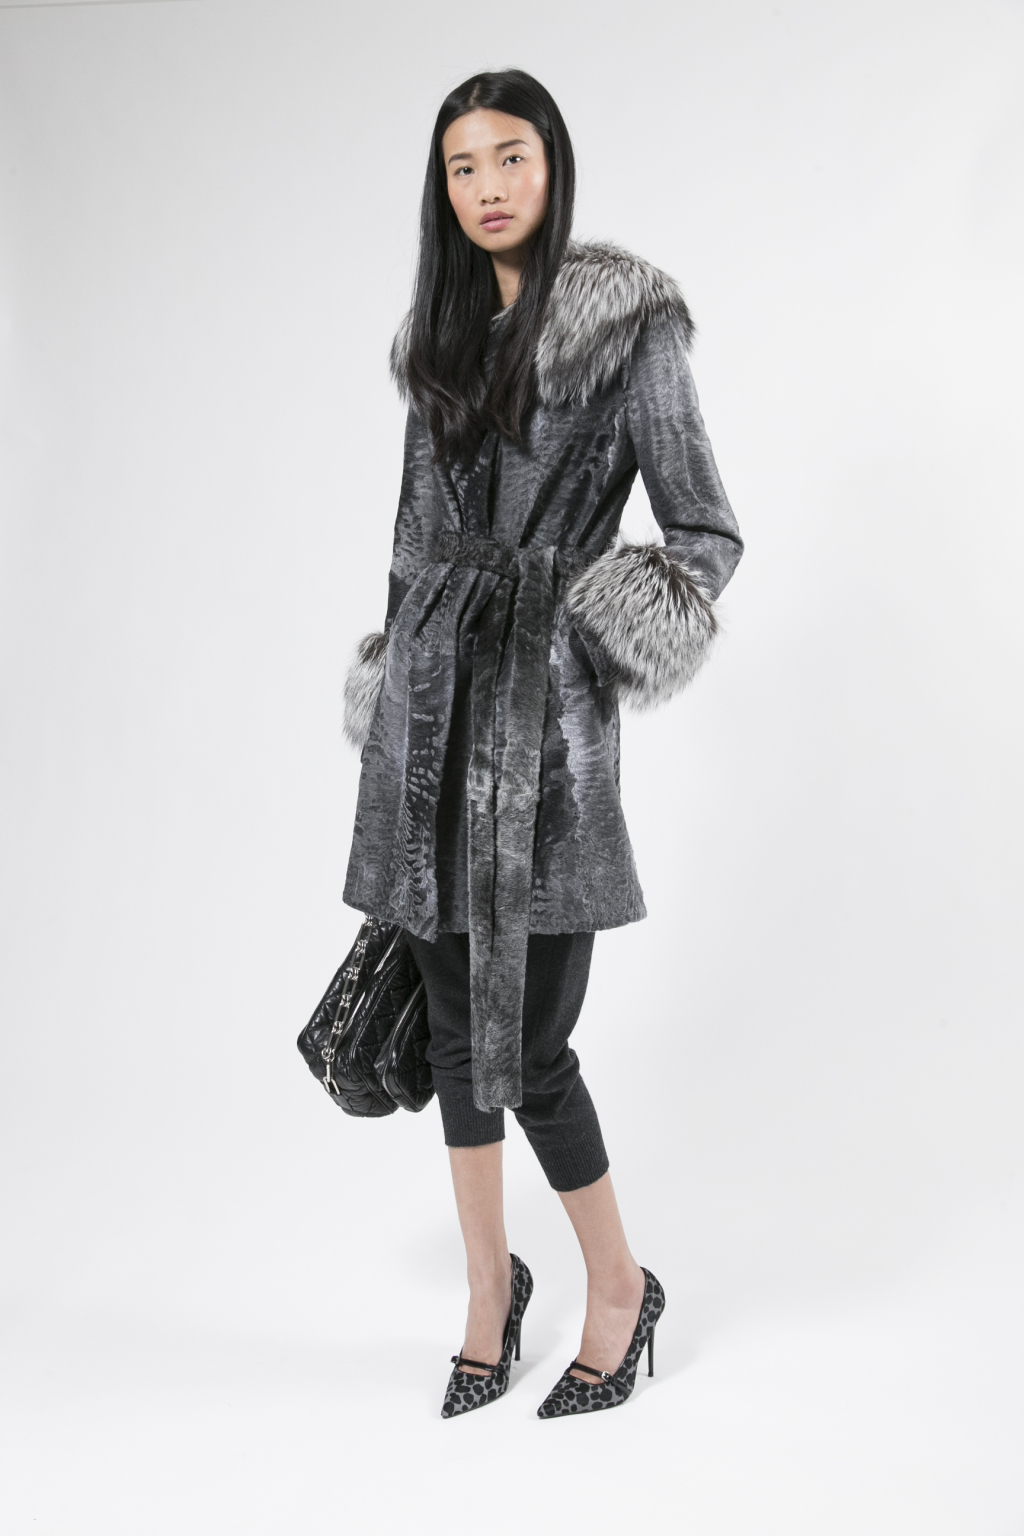 Michael Kors Collection Furs 2016 - Diversity came in silhouettes that ranged from sleek (a long vest in fawn lamb with cross fox trim) to abundant (a glorious fluff of Arctic blue fox).